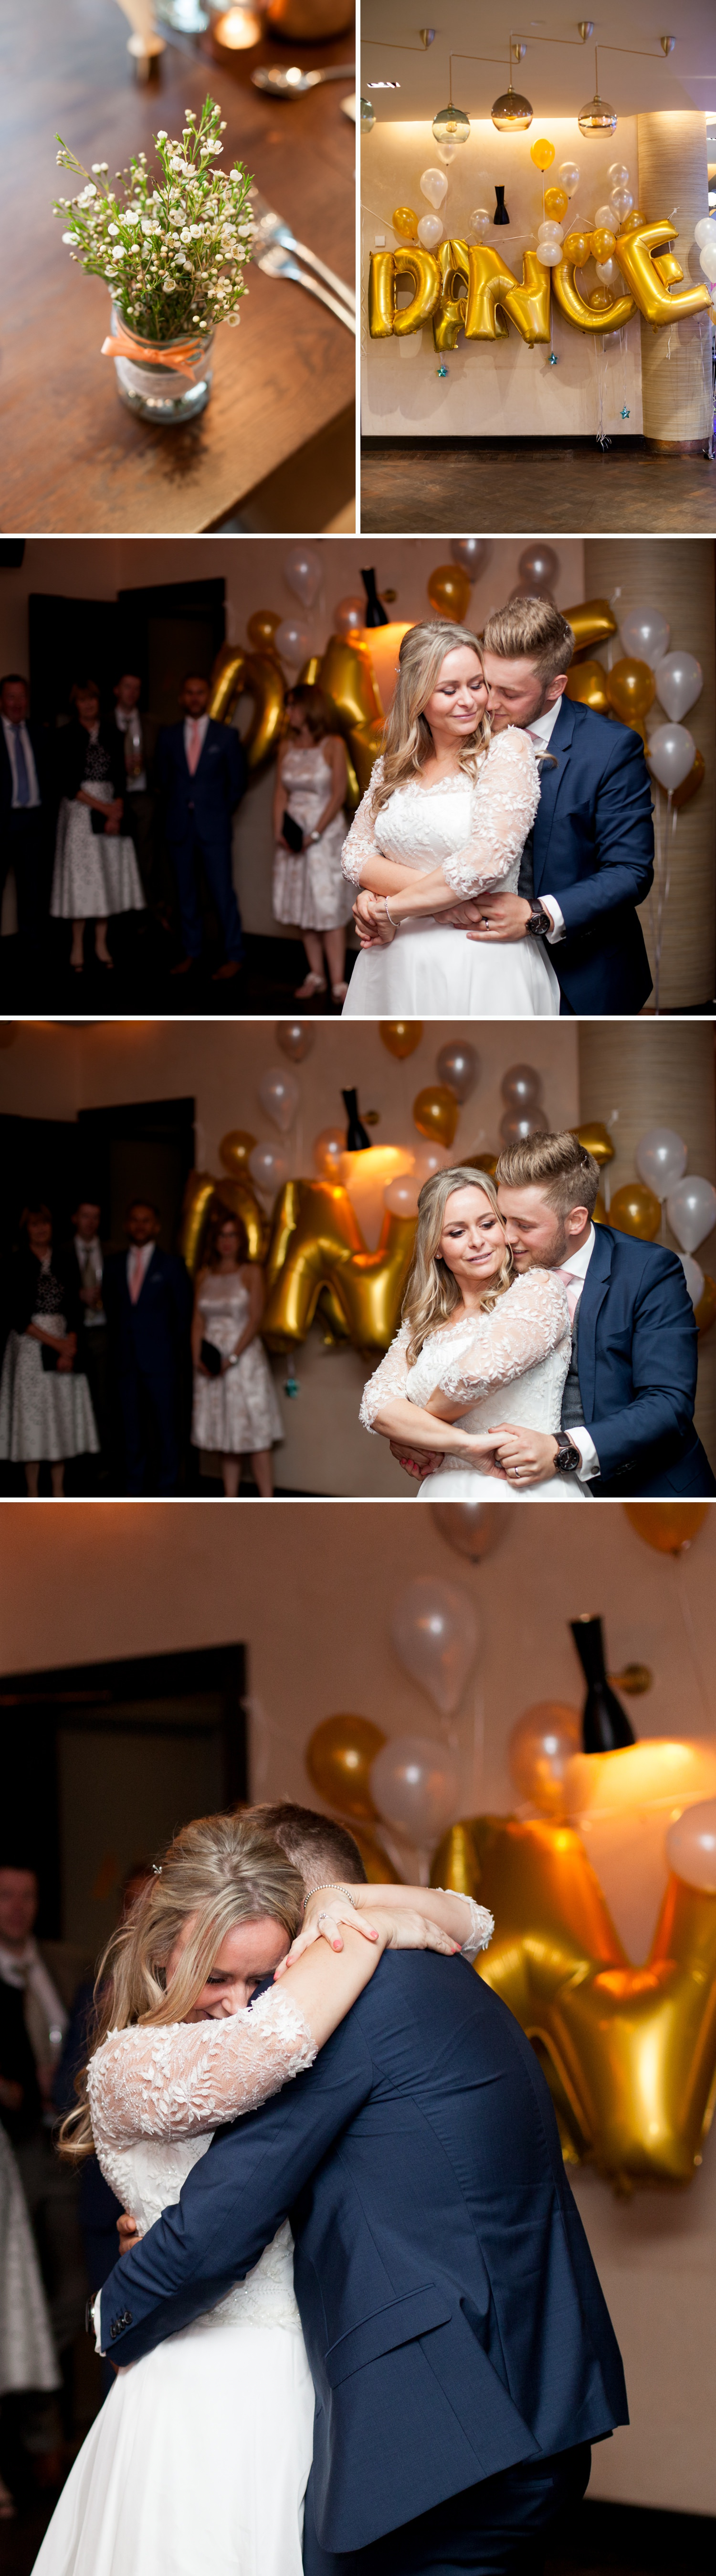 Charlotte & Adam's St. Paul's Cathedral wedding - a first dance at a wedding